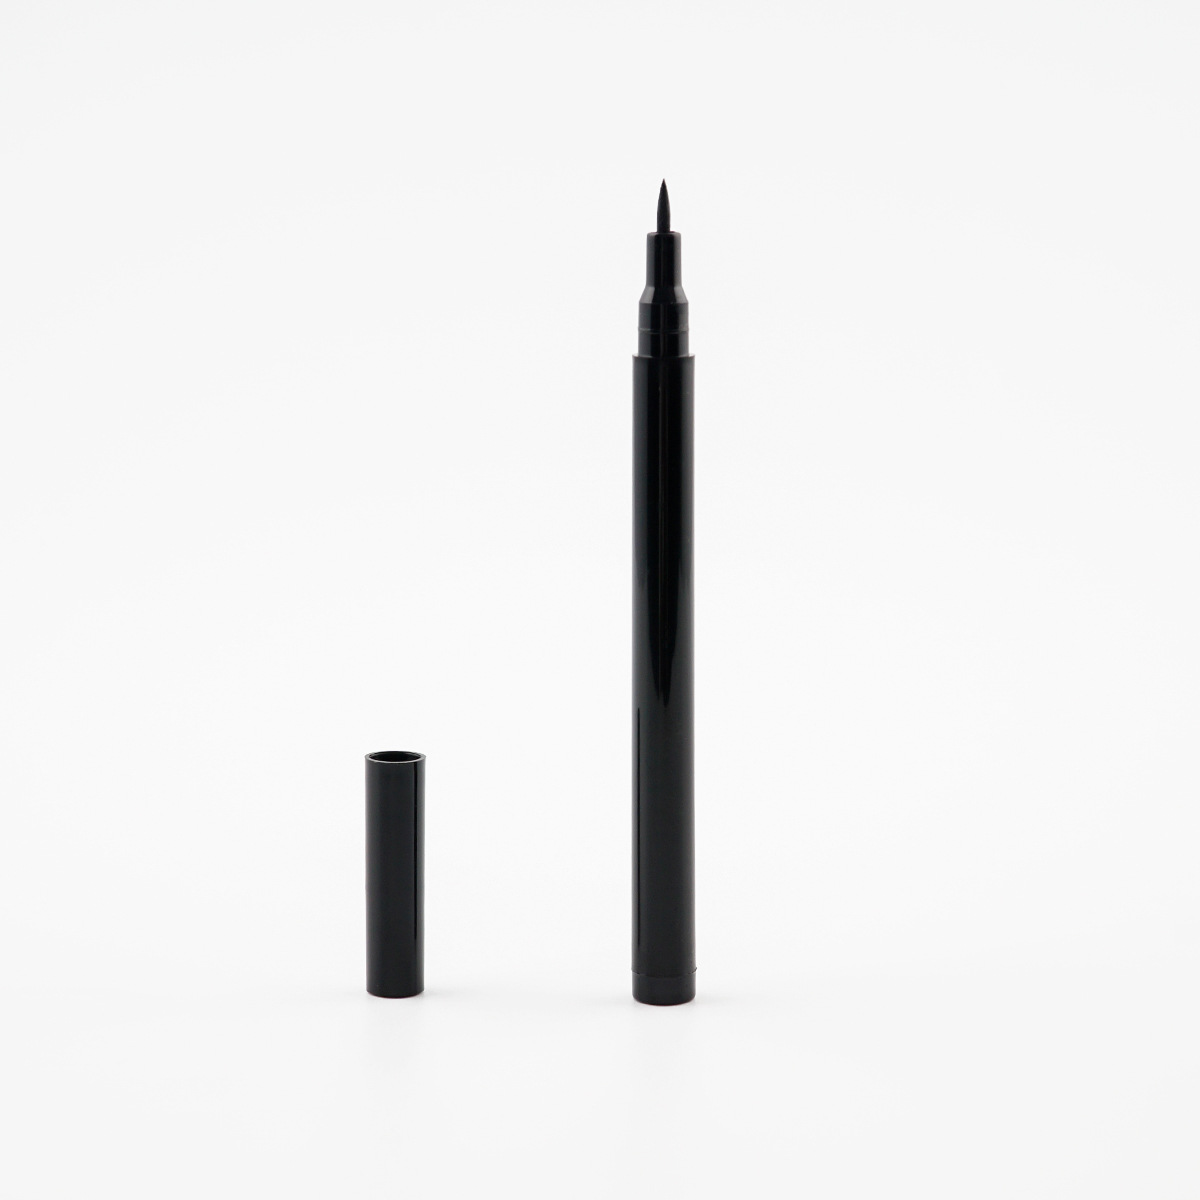 WENLE Competitive Price Plastic Empty Black Eye Liner Pencil Tube Eyebrow Eyeliner Pencil Container